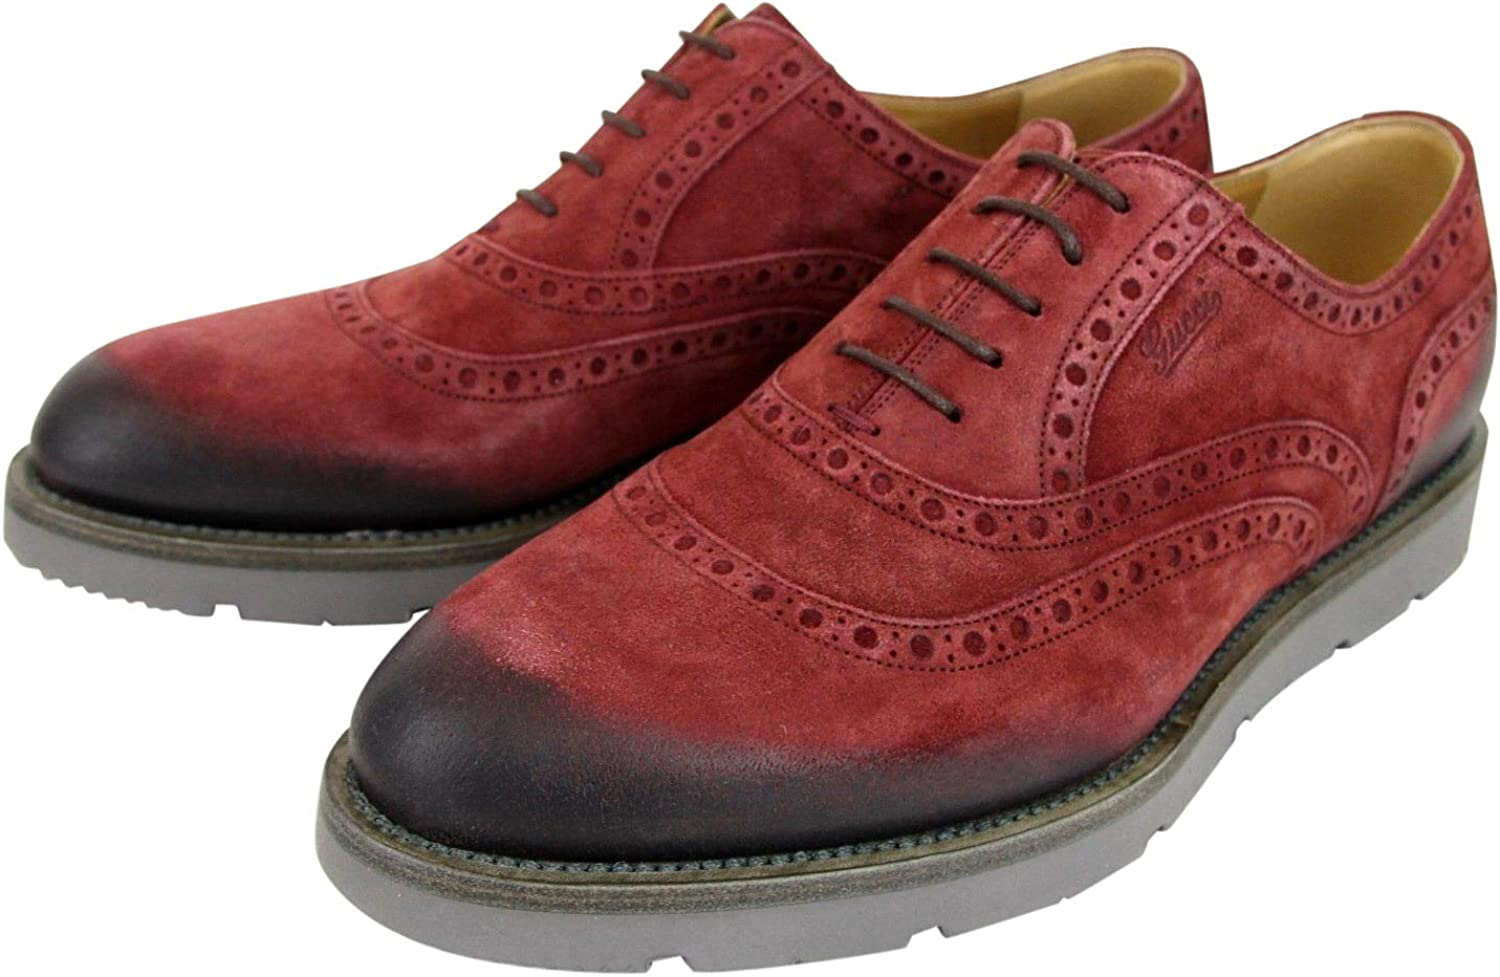 Oxford Red Suede Dress Shoes